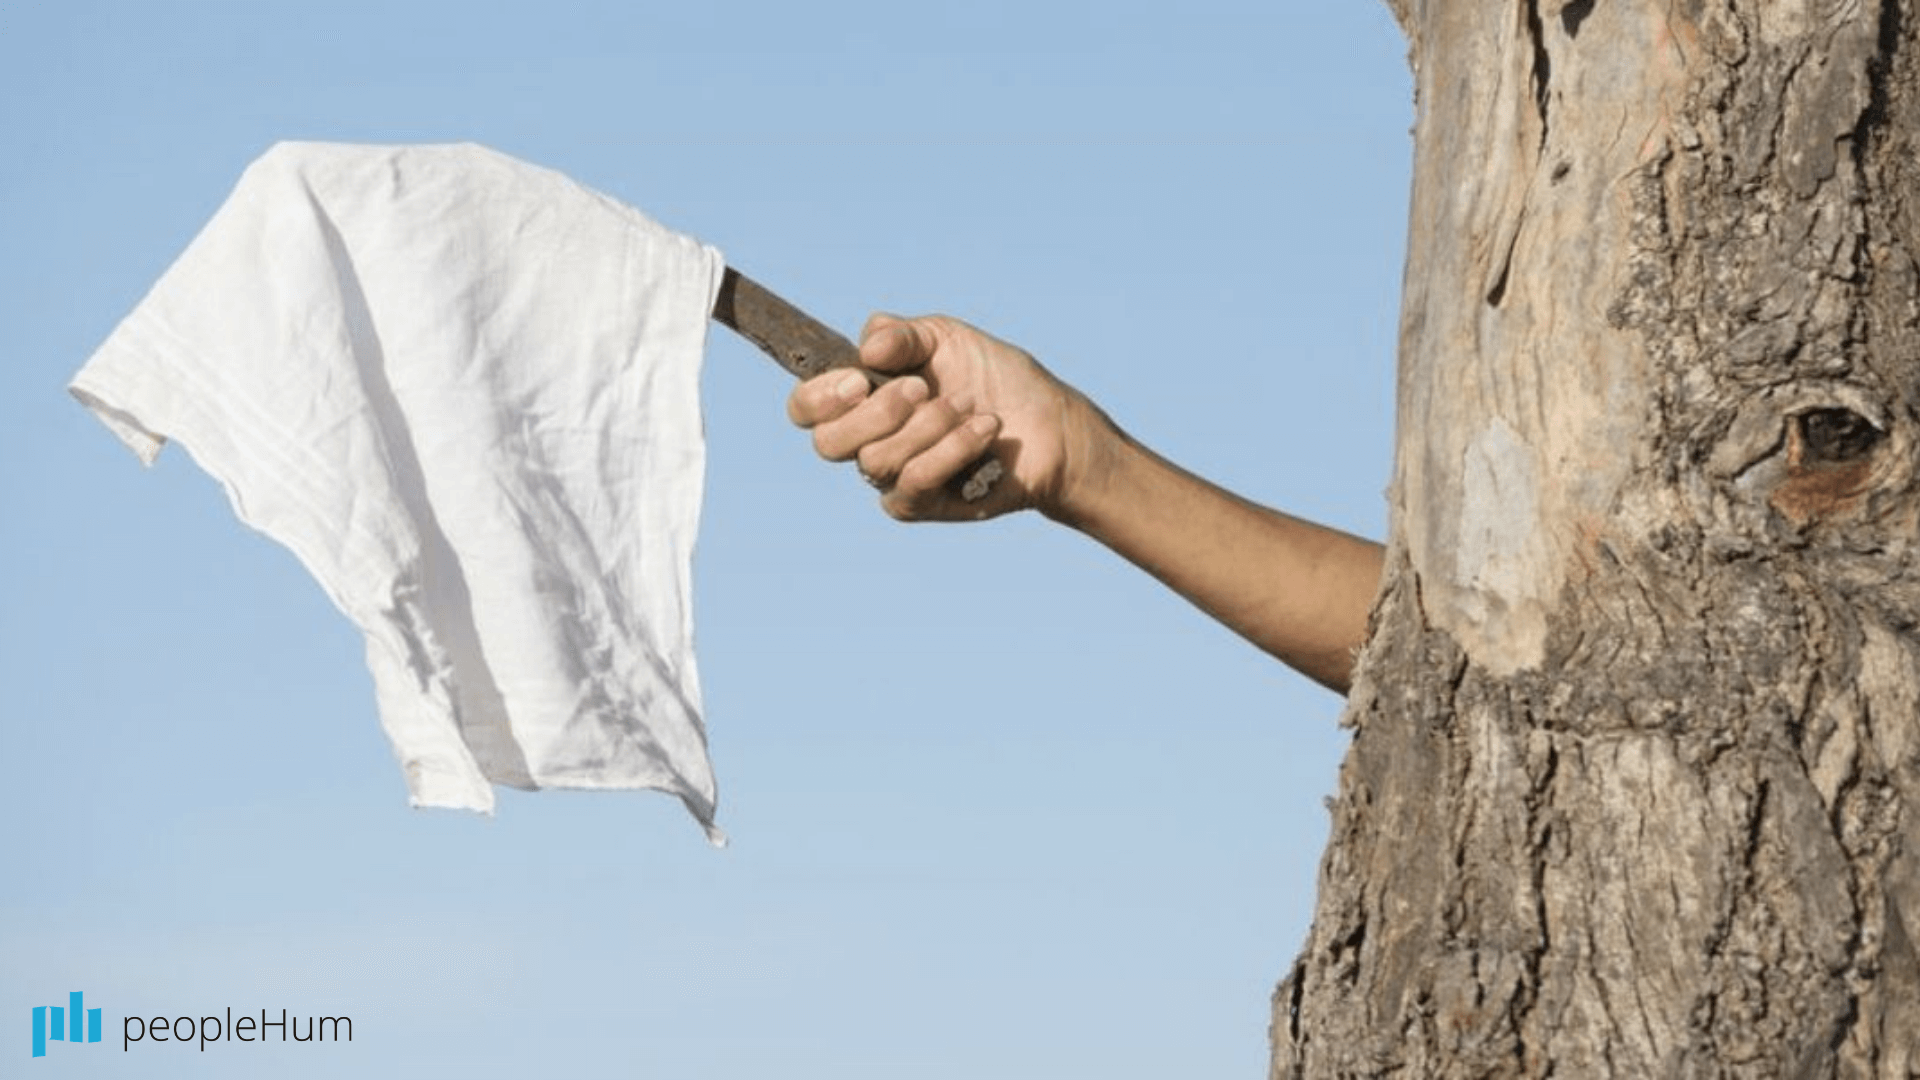 Excellent leaders know when to wave the white flag